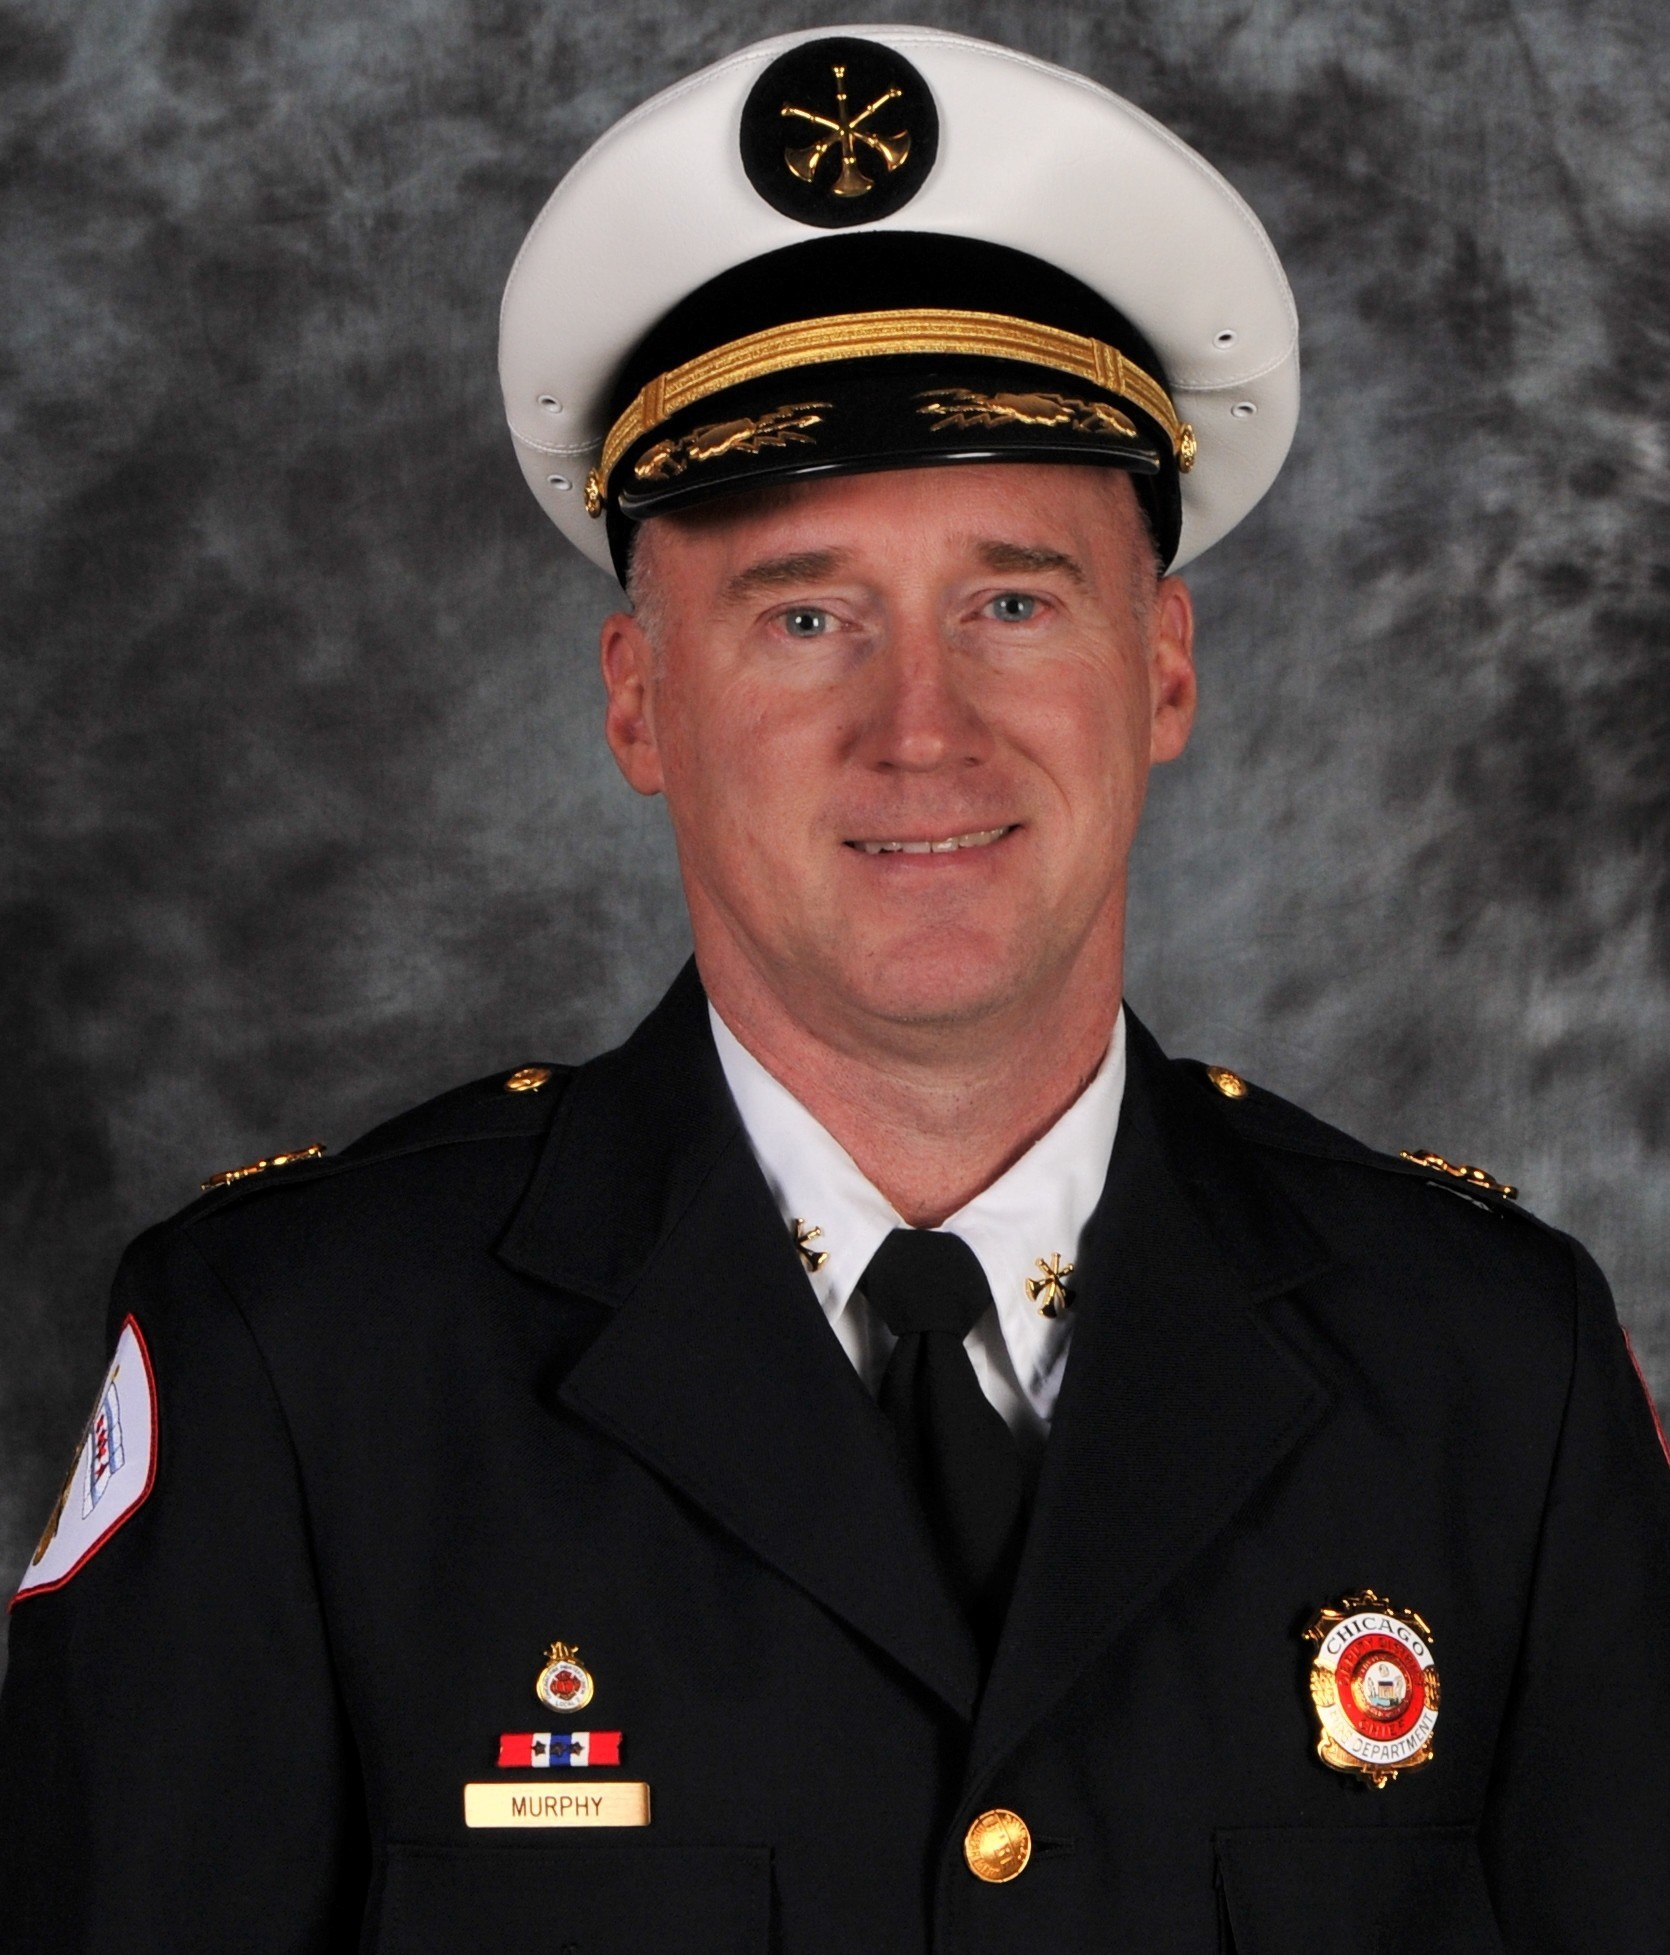 Chicago Fire Chief Dies Of 'massive Heart Attack' During